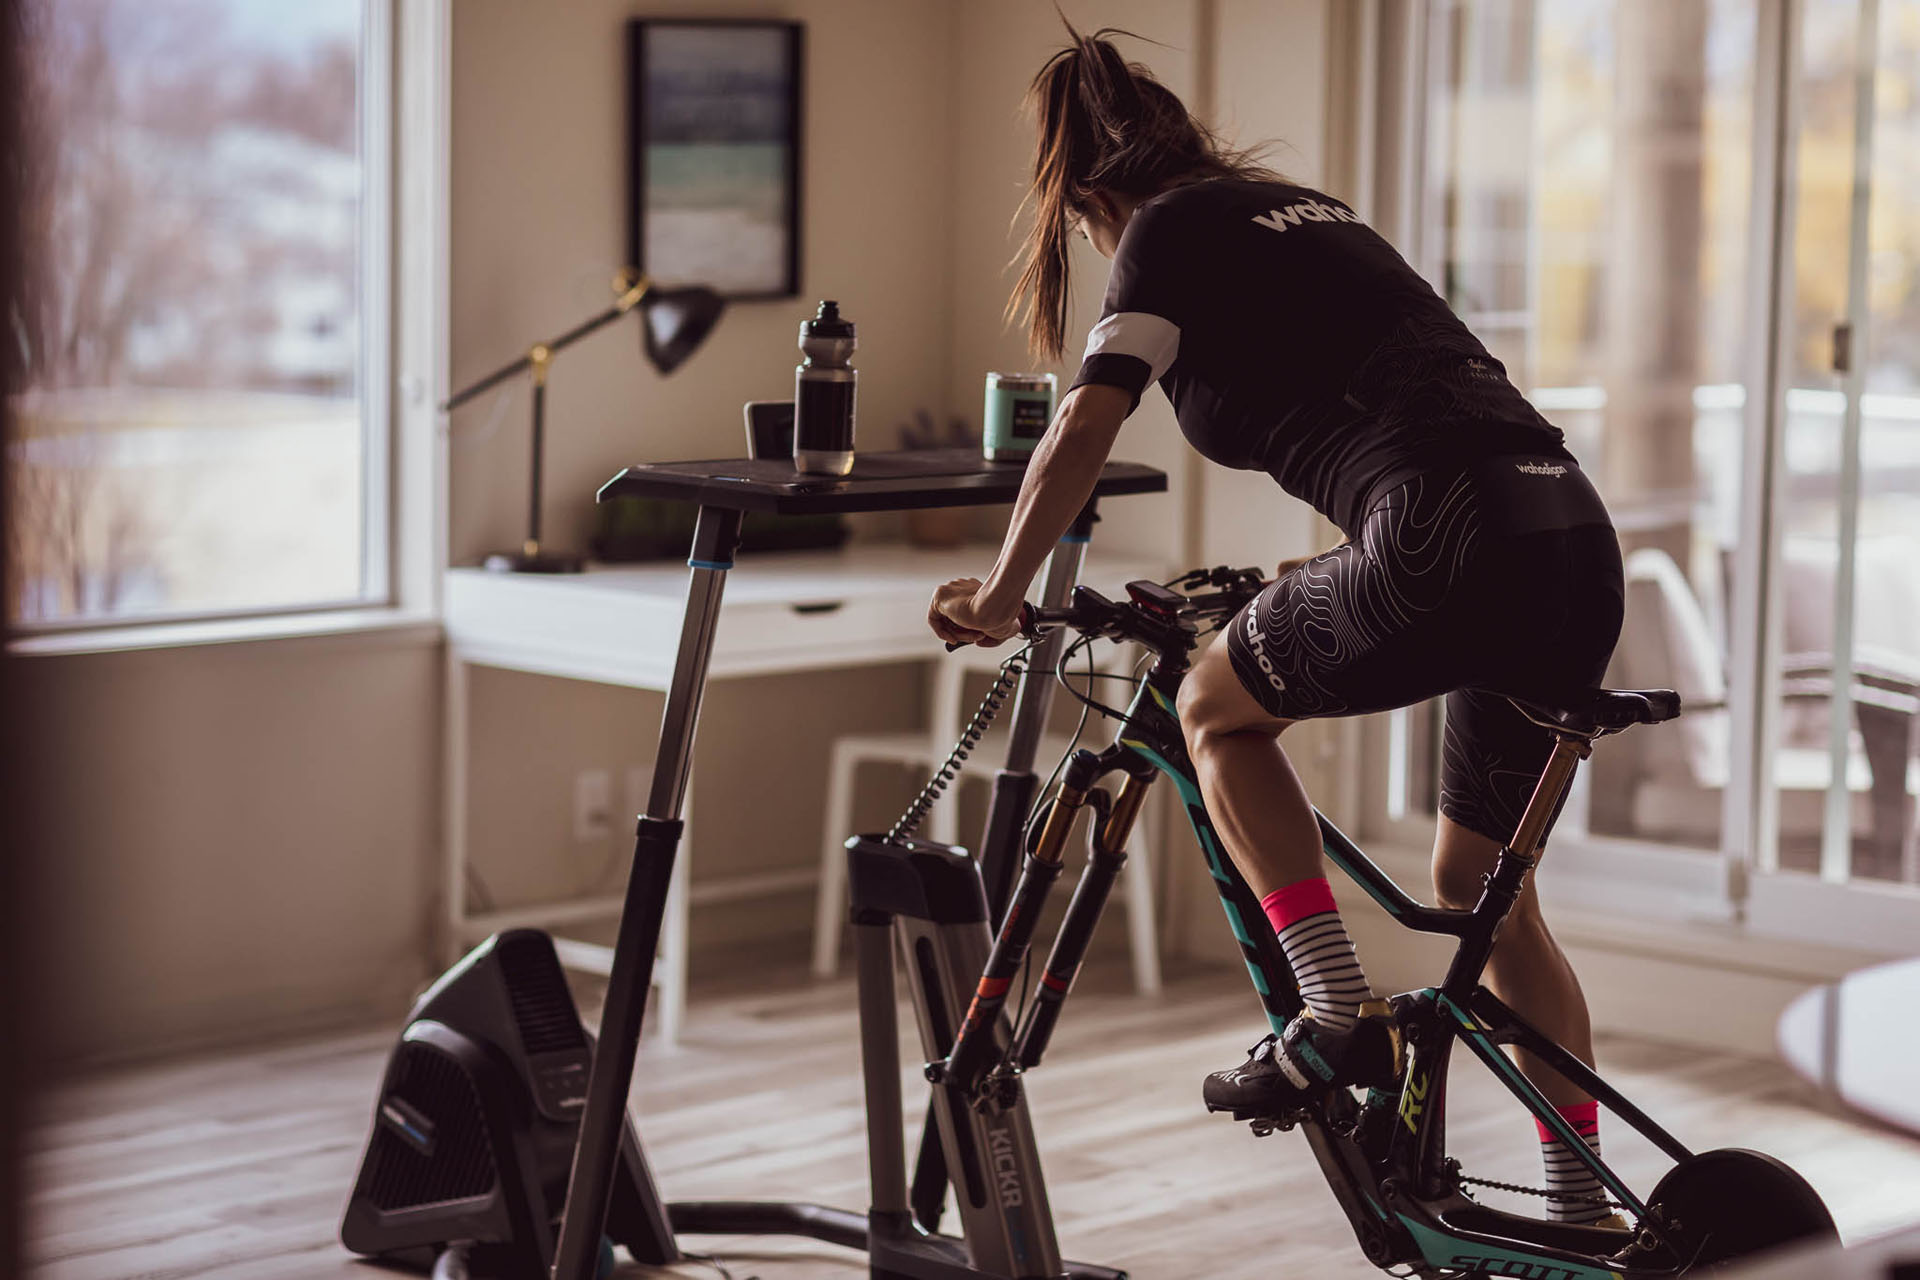 KICKR Indoor Cycling Desk-Picture-16